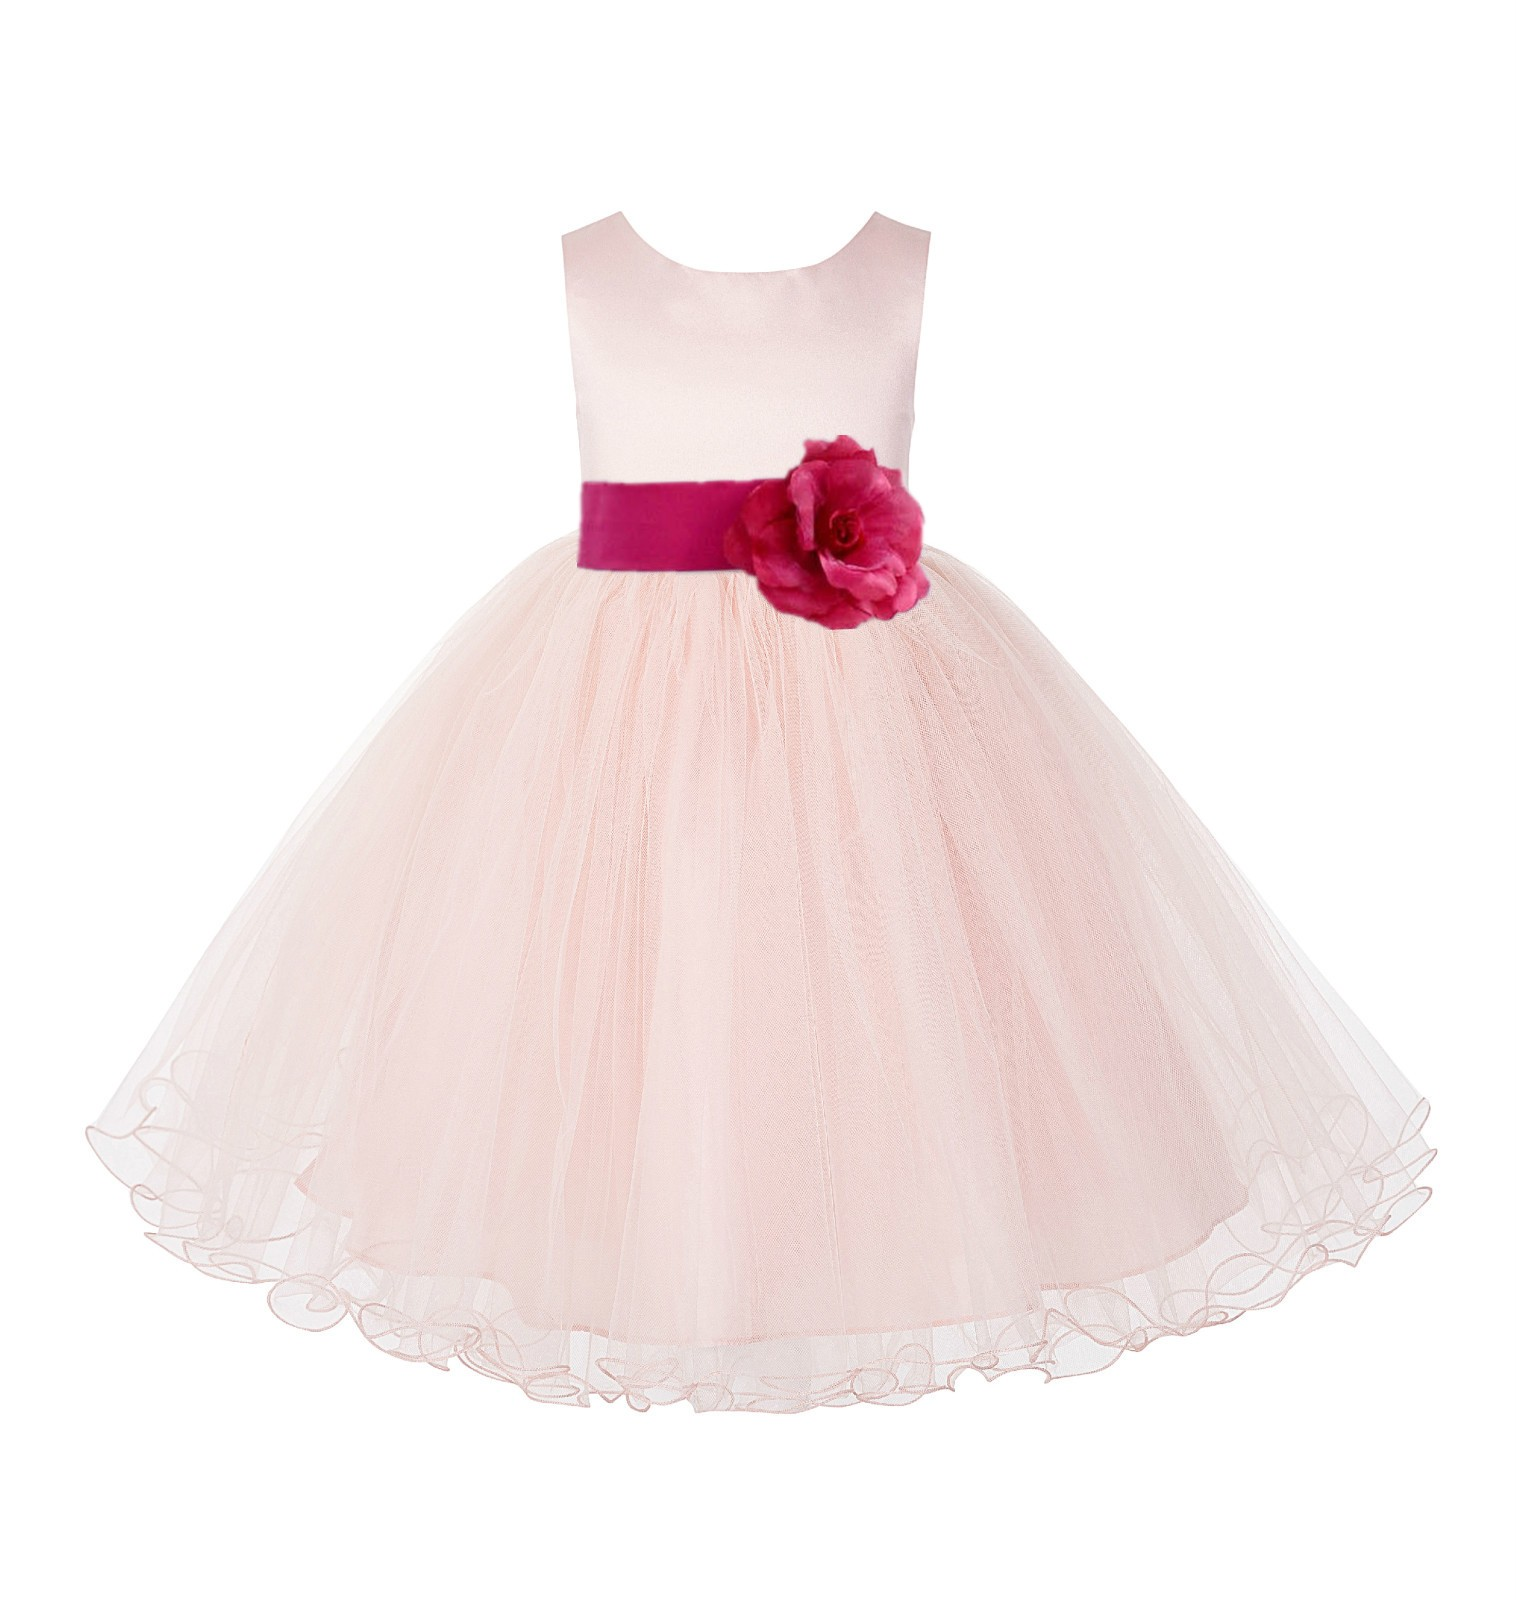 Blush PInk / Watermelon Tulle Rattail Edge Flower Girl Dress Wedding Bridesmaid 829T